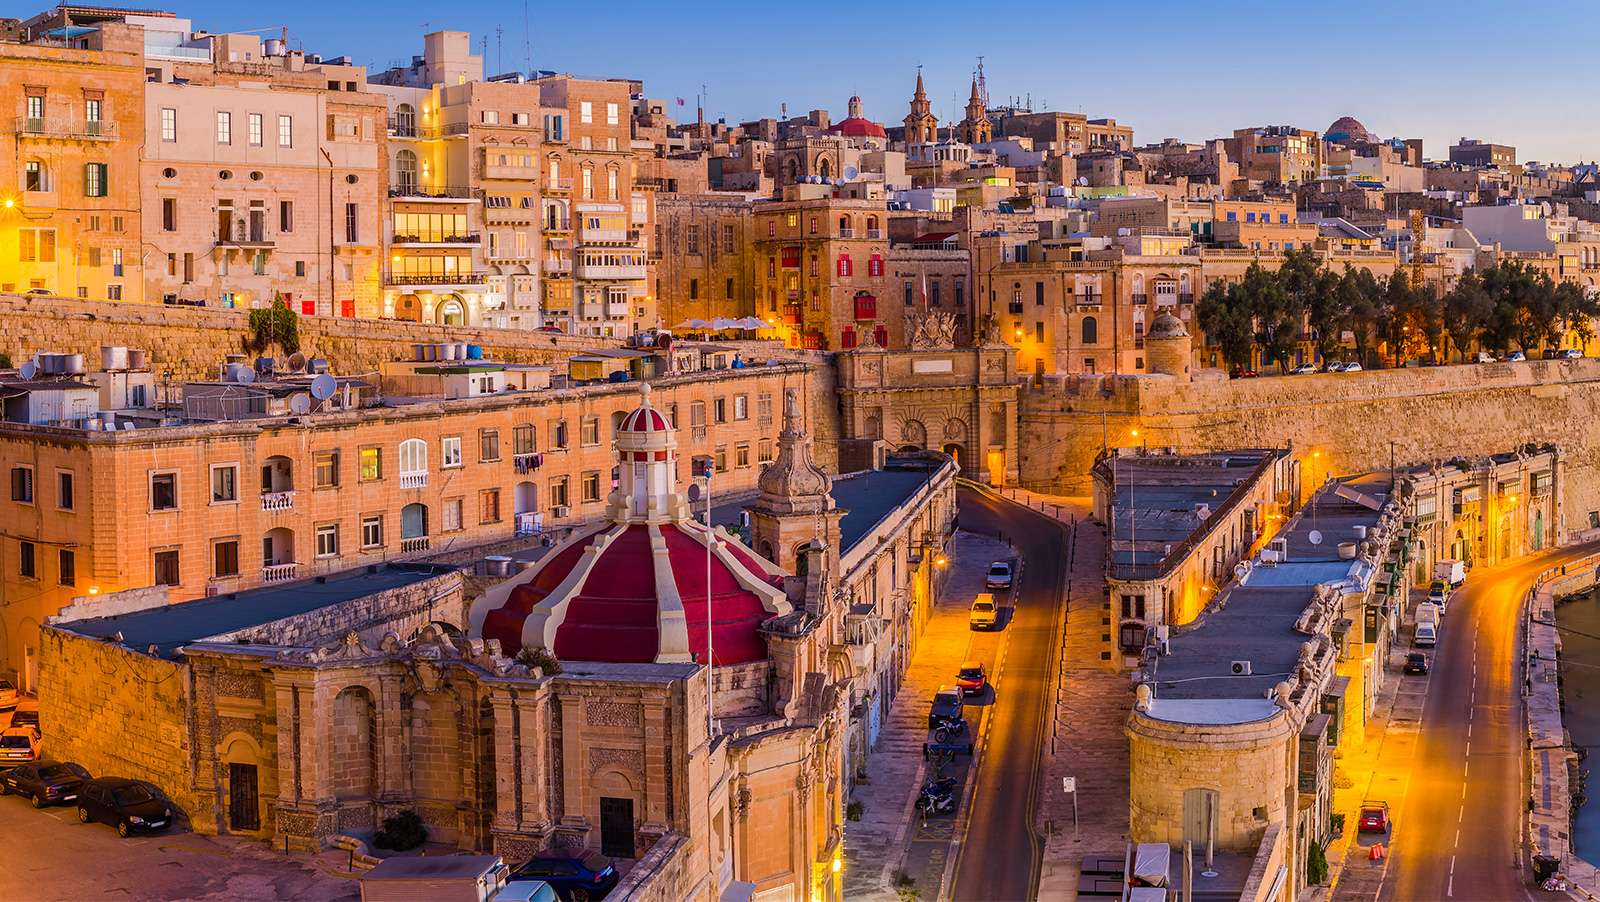 Becky's Affiliated: Malta on my mind- why Hero Gaming is making a difference